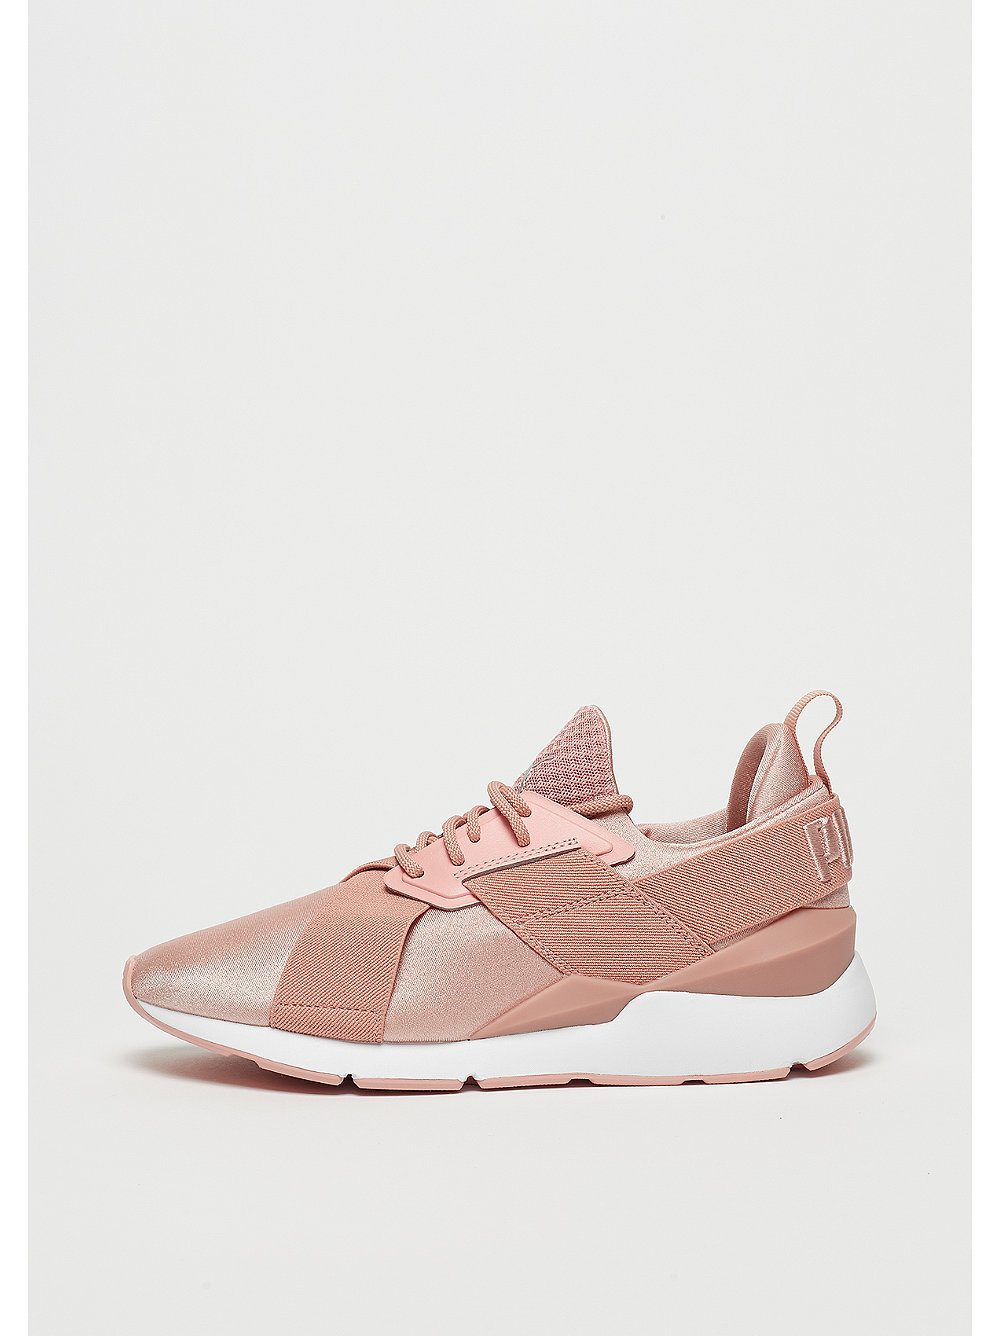 Muse X-Strp peach beige-white